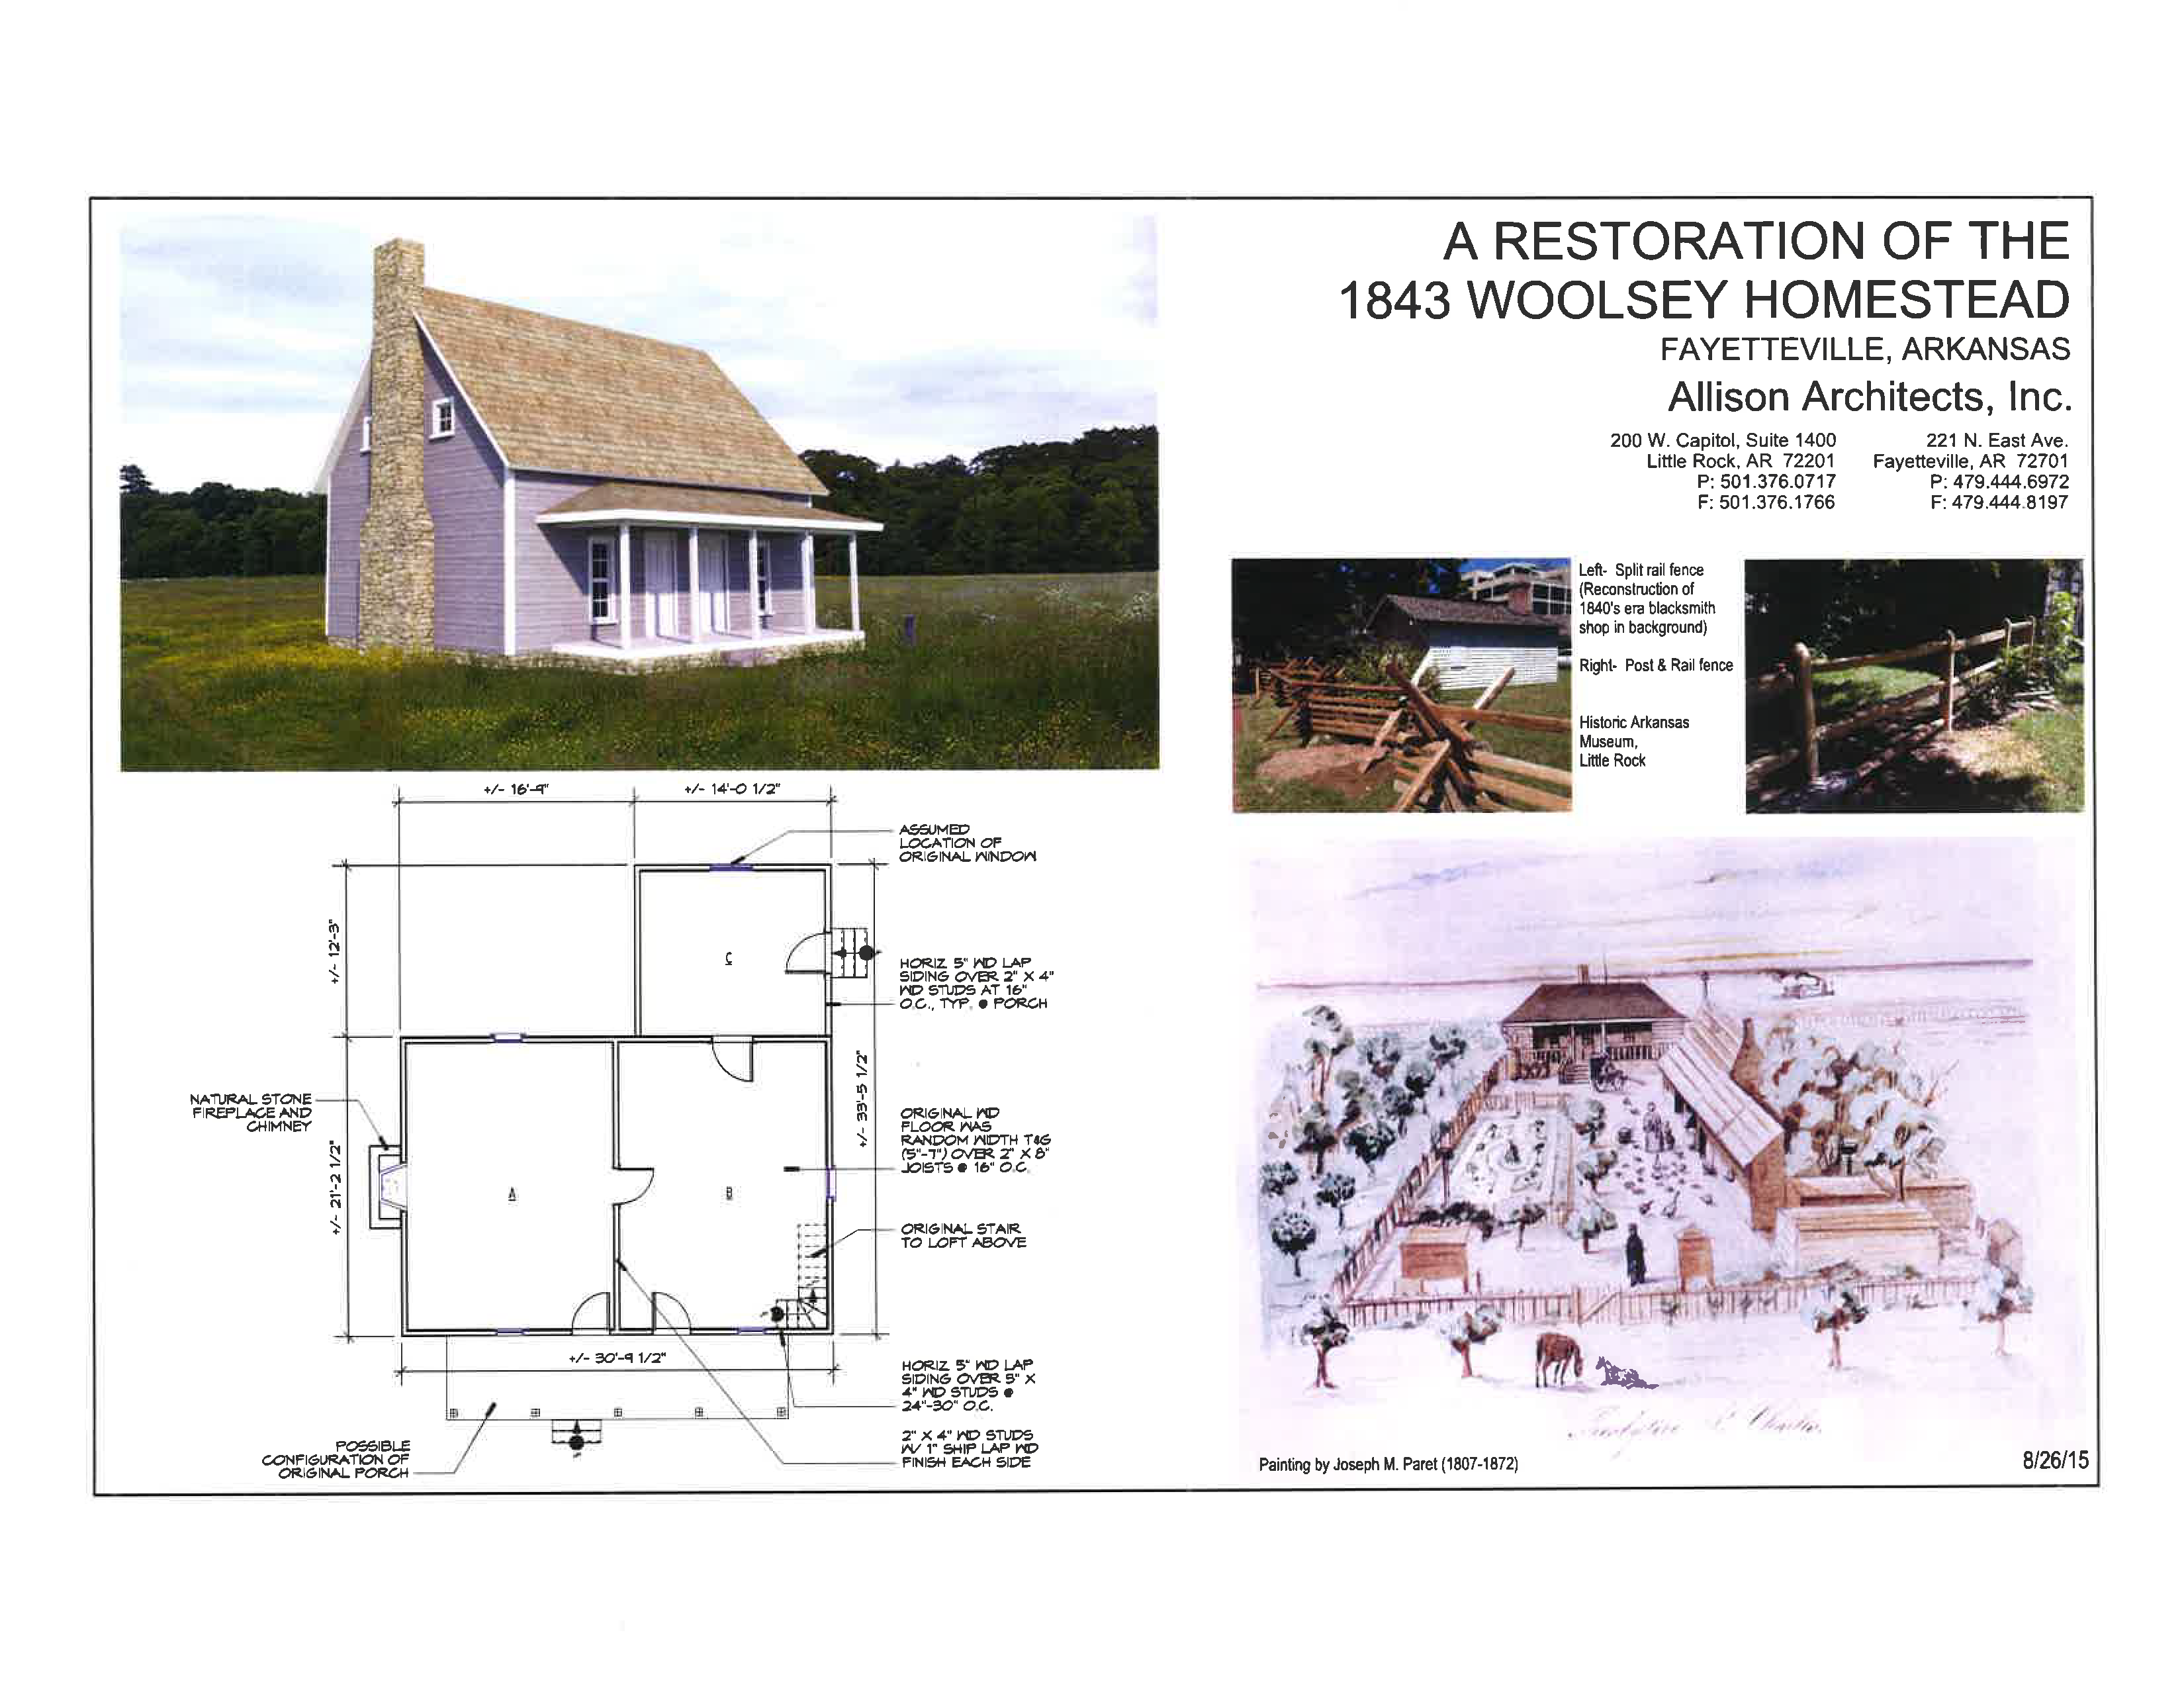 An artist's rendering of the Woolsey farmstead after reconstruction, with floorplan